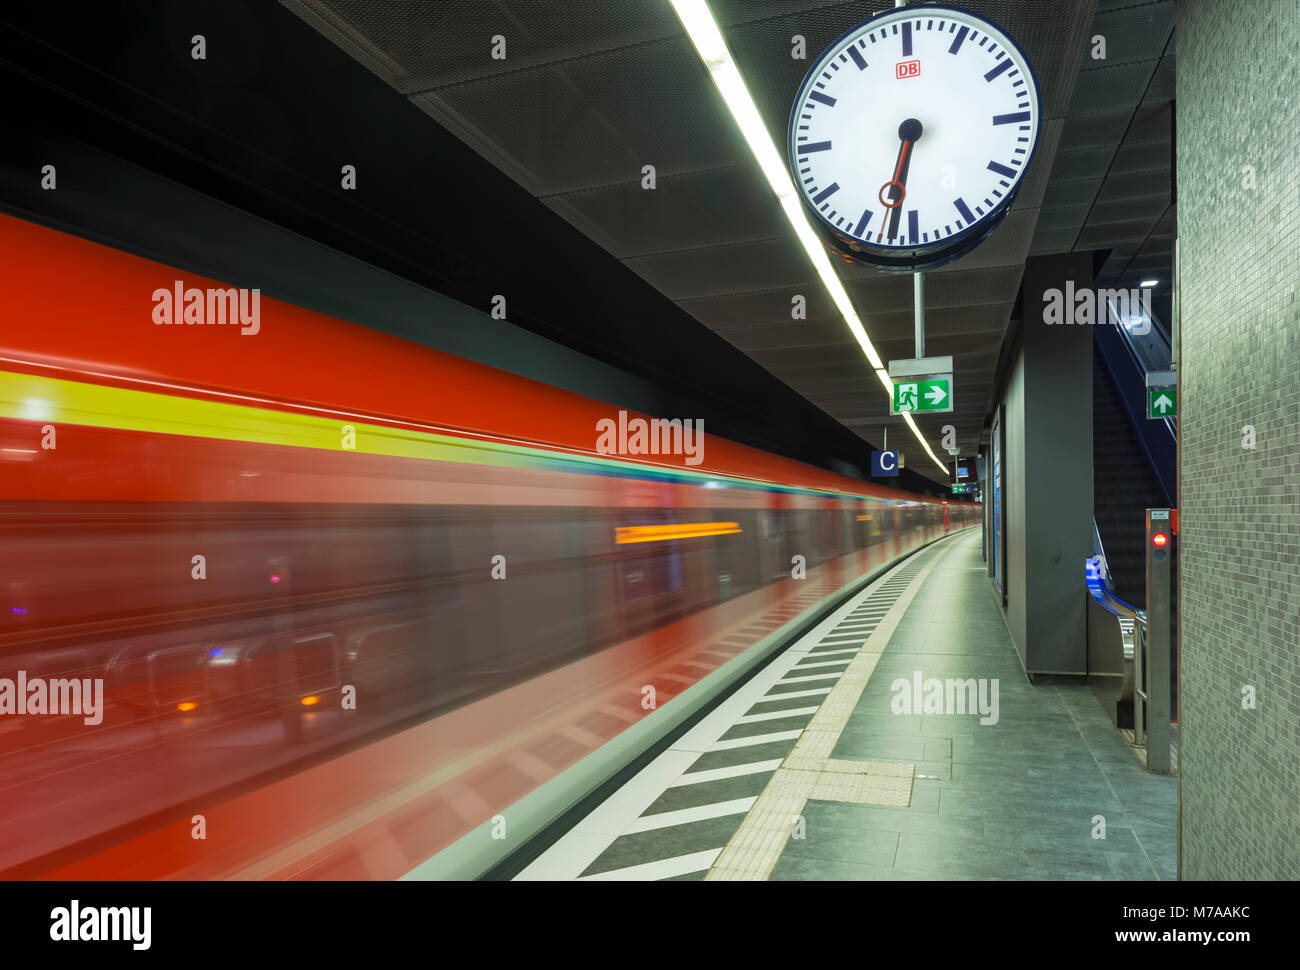 Train coming in at the platform, metropolitan station Taunusanlage, Westend, Frankfurt am Main, Hesse, Germany - Stock Image